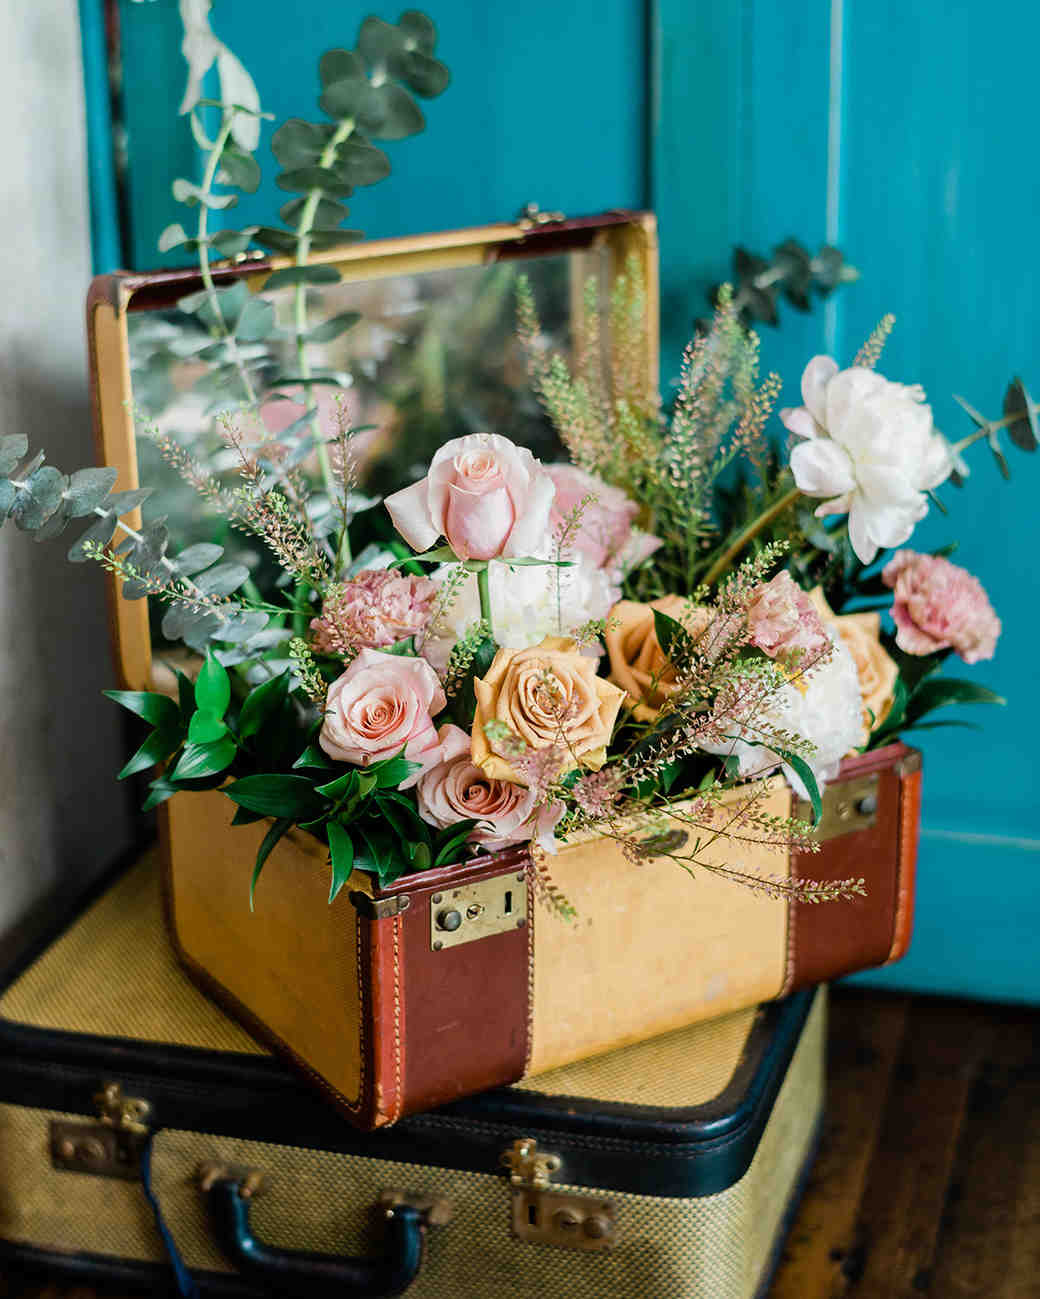 vintage suitcases filled with flowers